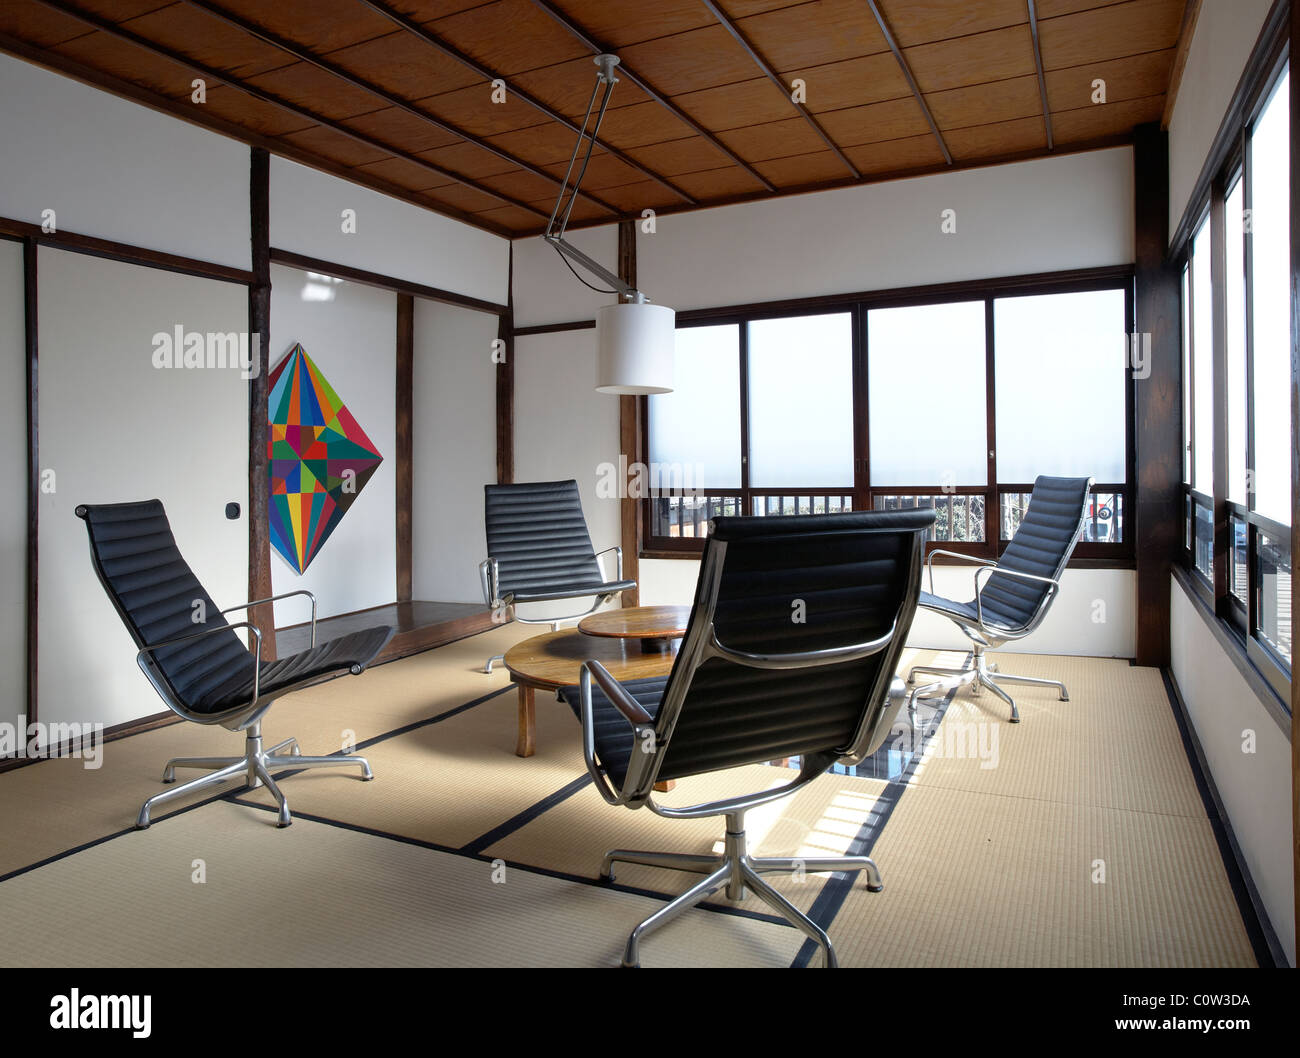 Eames Lounge Office Chair Eames Chairs Stock Photos And Eames Chairs Stock Images Alamy